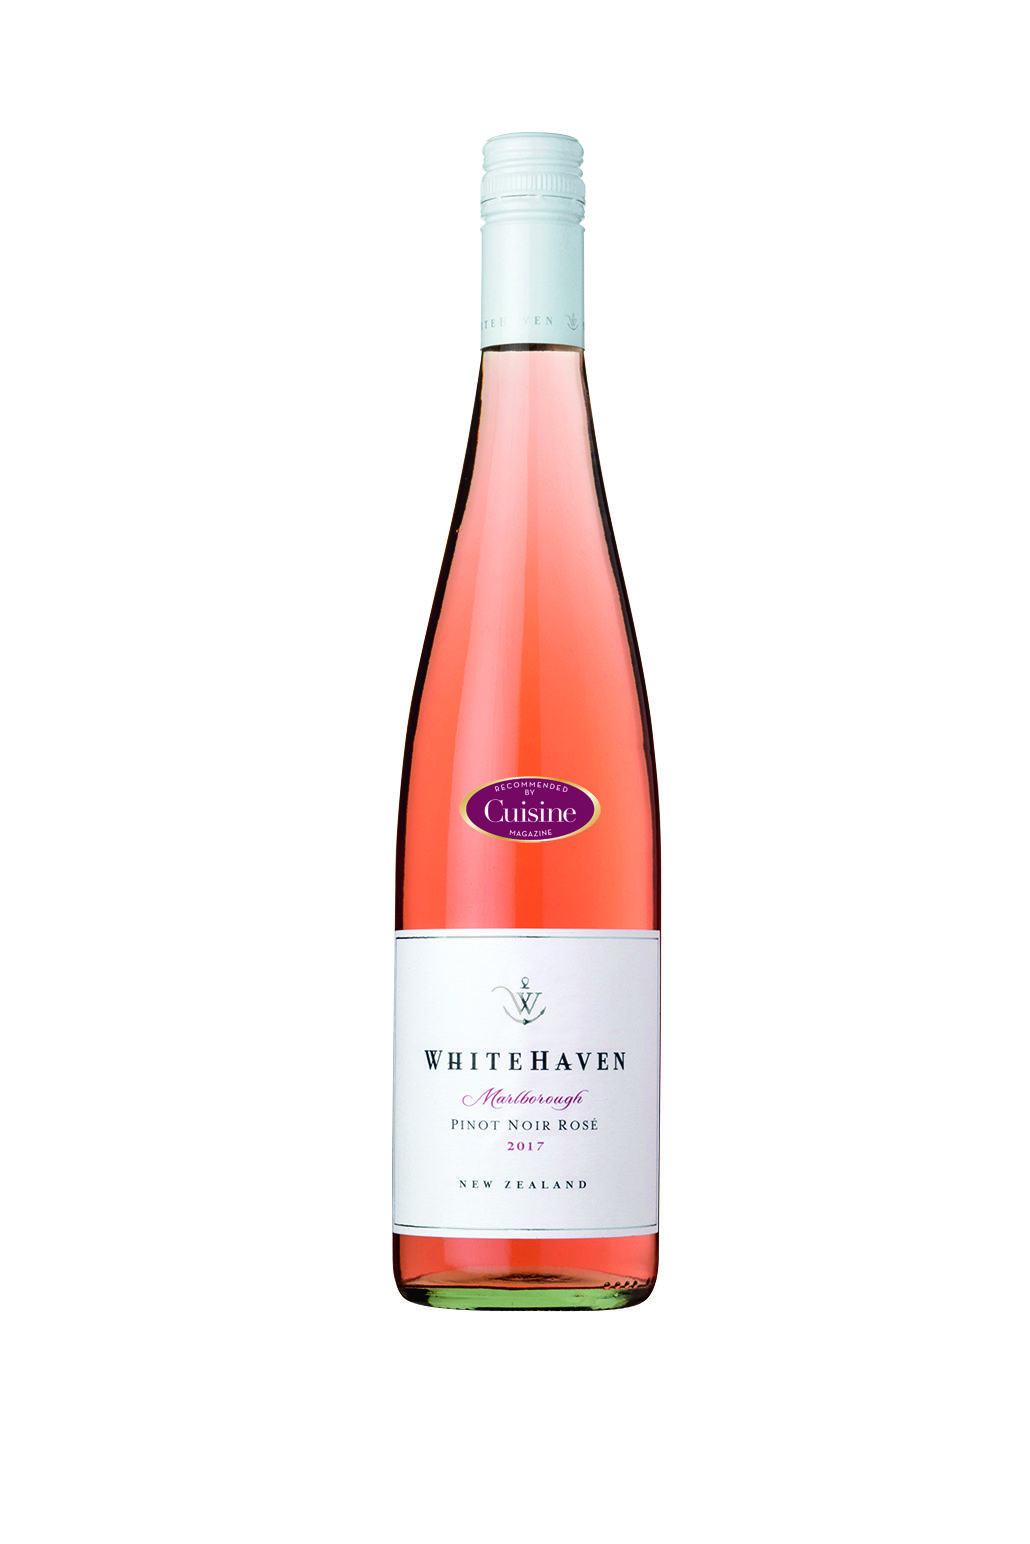 Whitehaven Marlborough Pinot Noir Rosé 2017